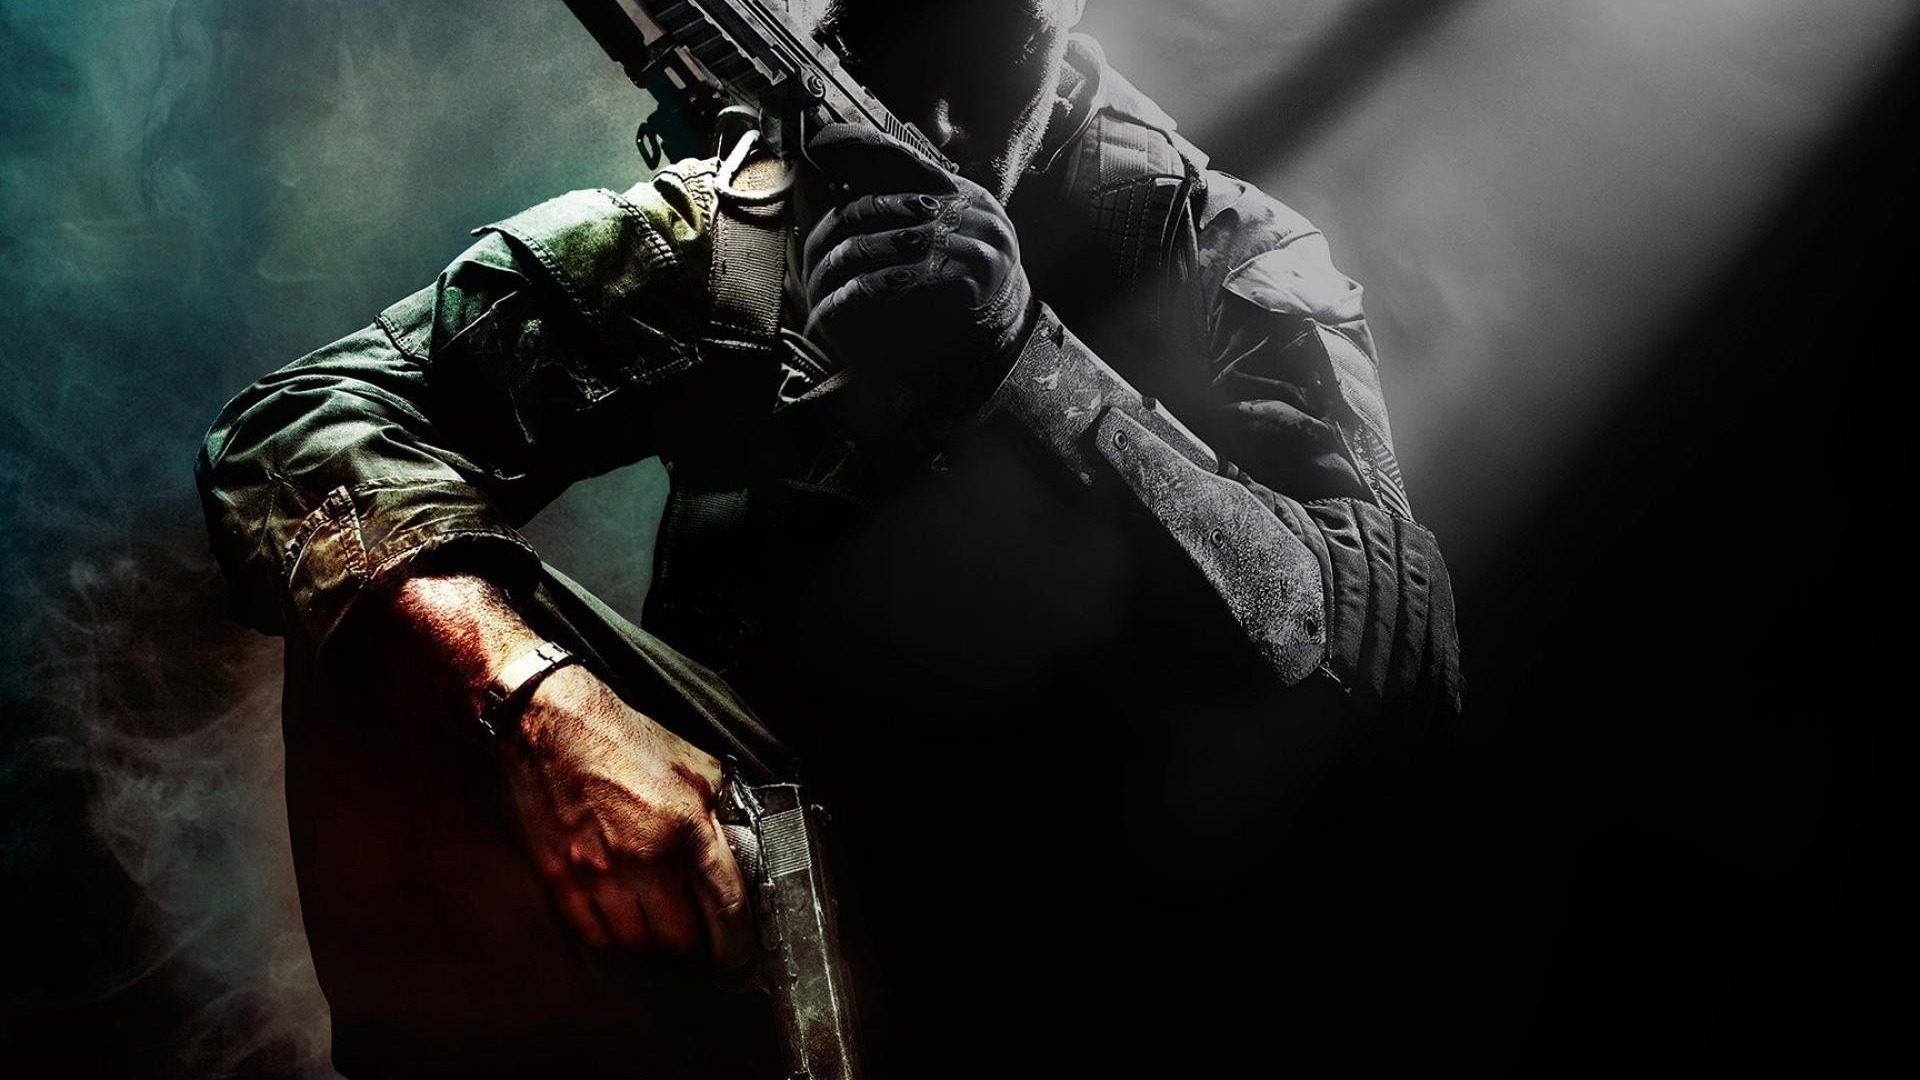 Pubg Black Wallpapers: Treyarch's Call Of Duty 2015 Teases Continue In Black Ops 2